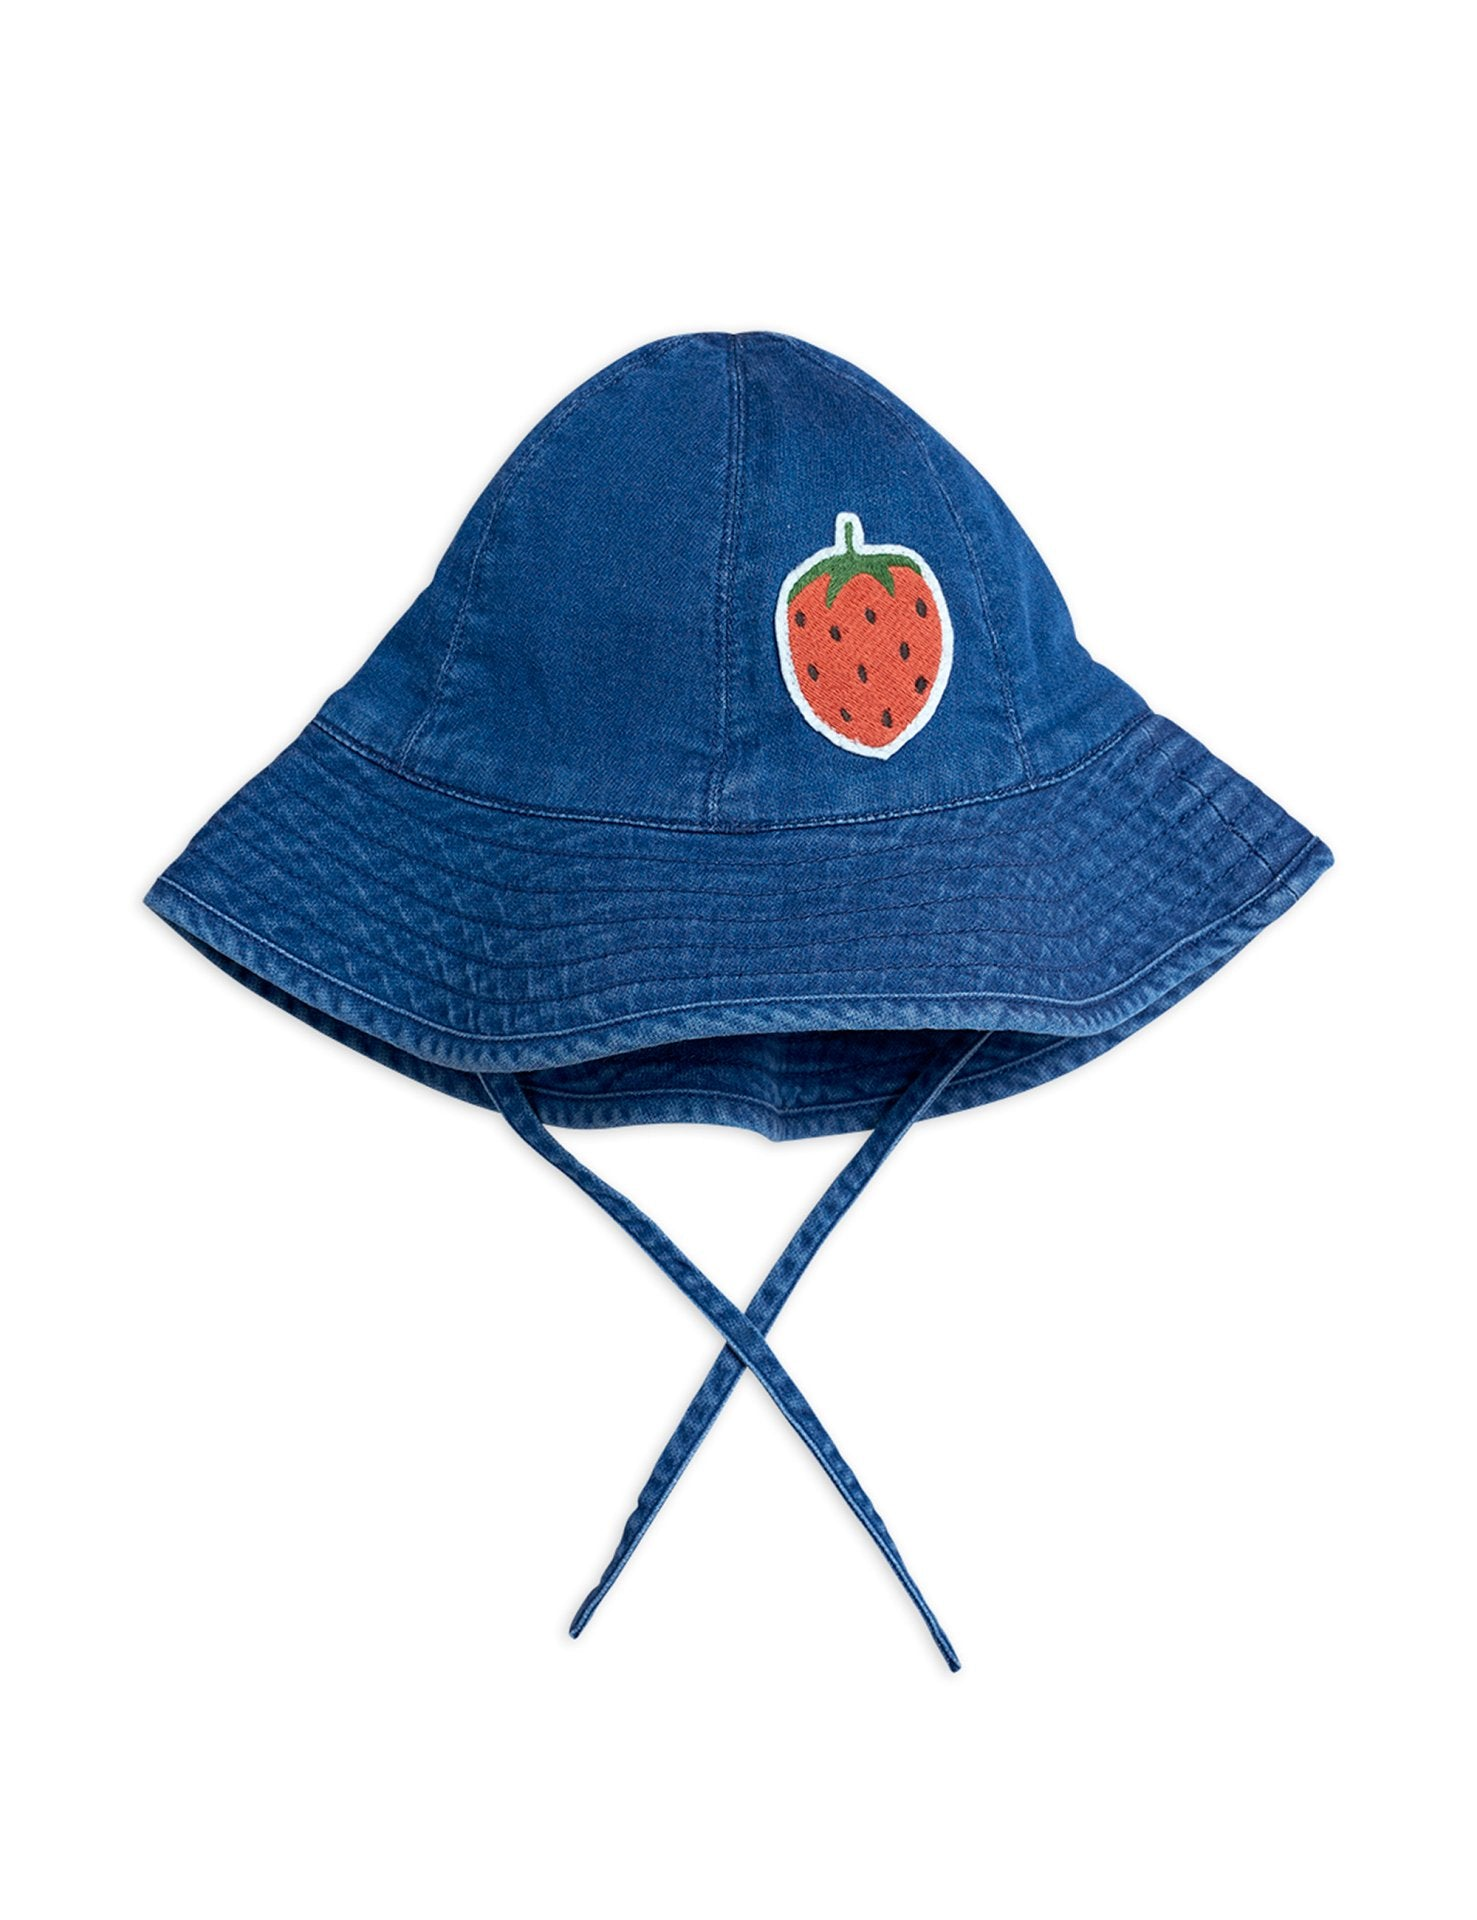 Denim Strawberry Sun Hat - Zirkuss